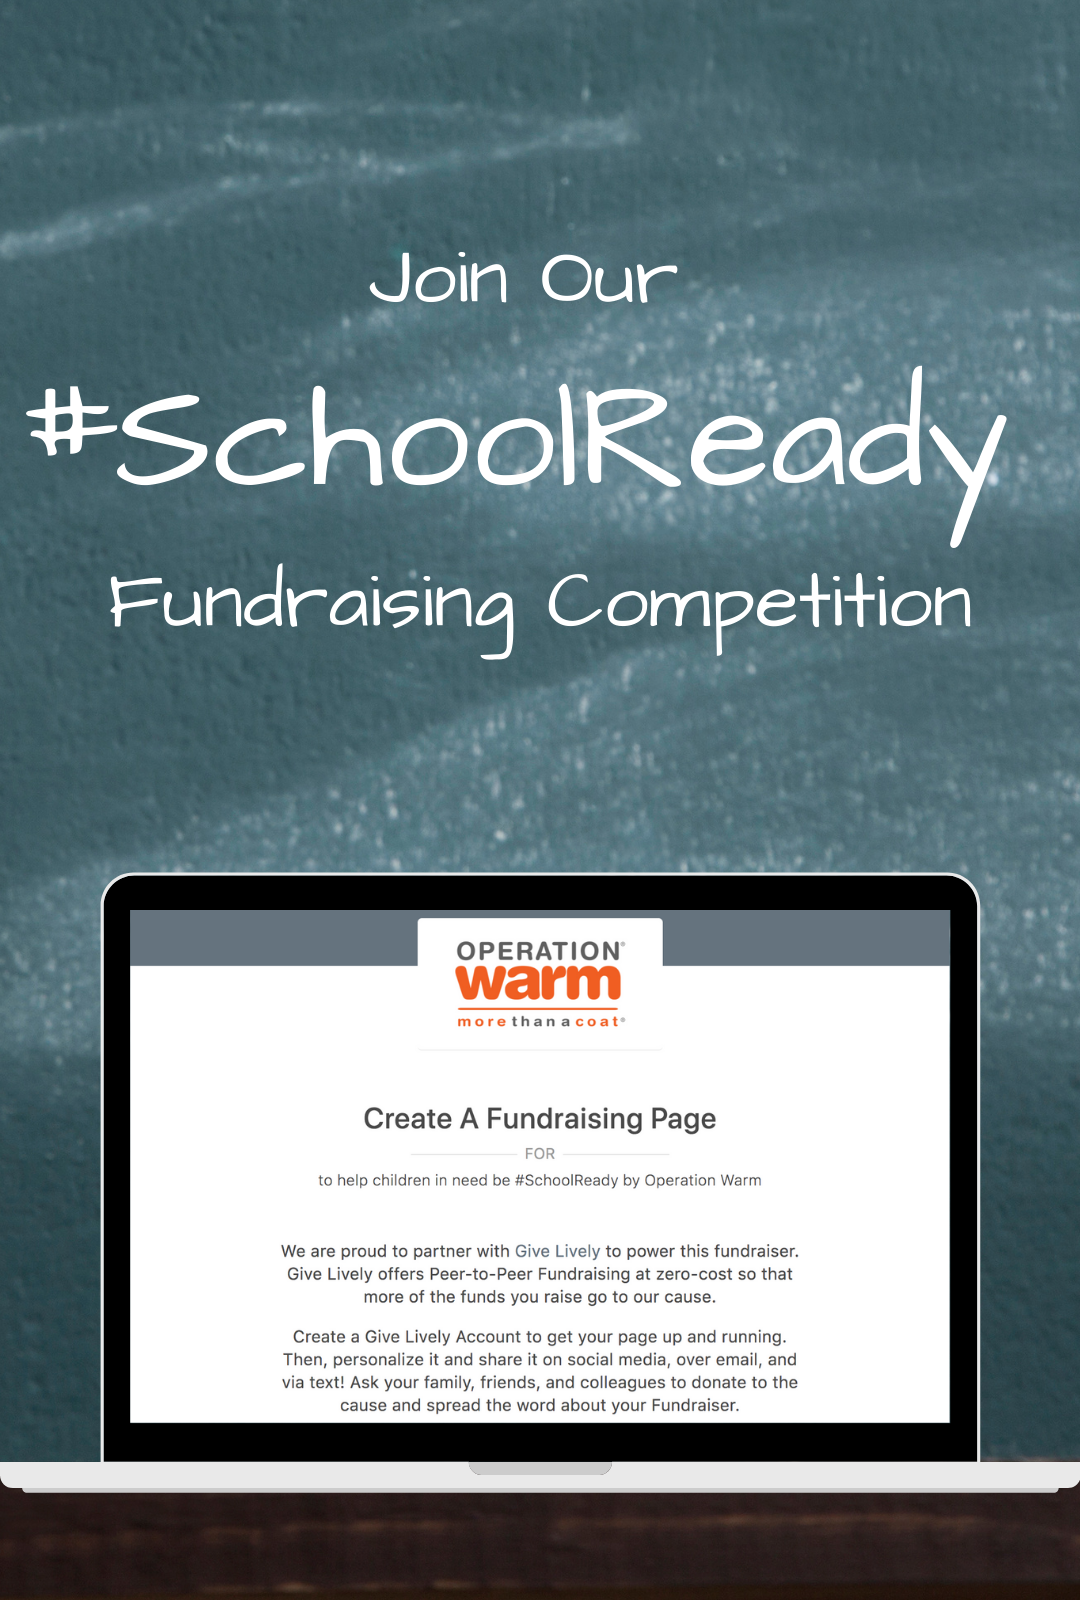 Join Our #SchoolReady Fundraising Competition